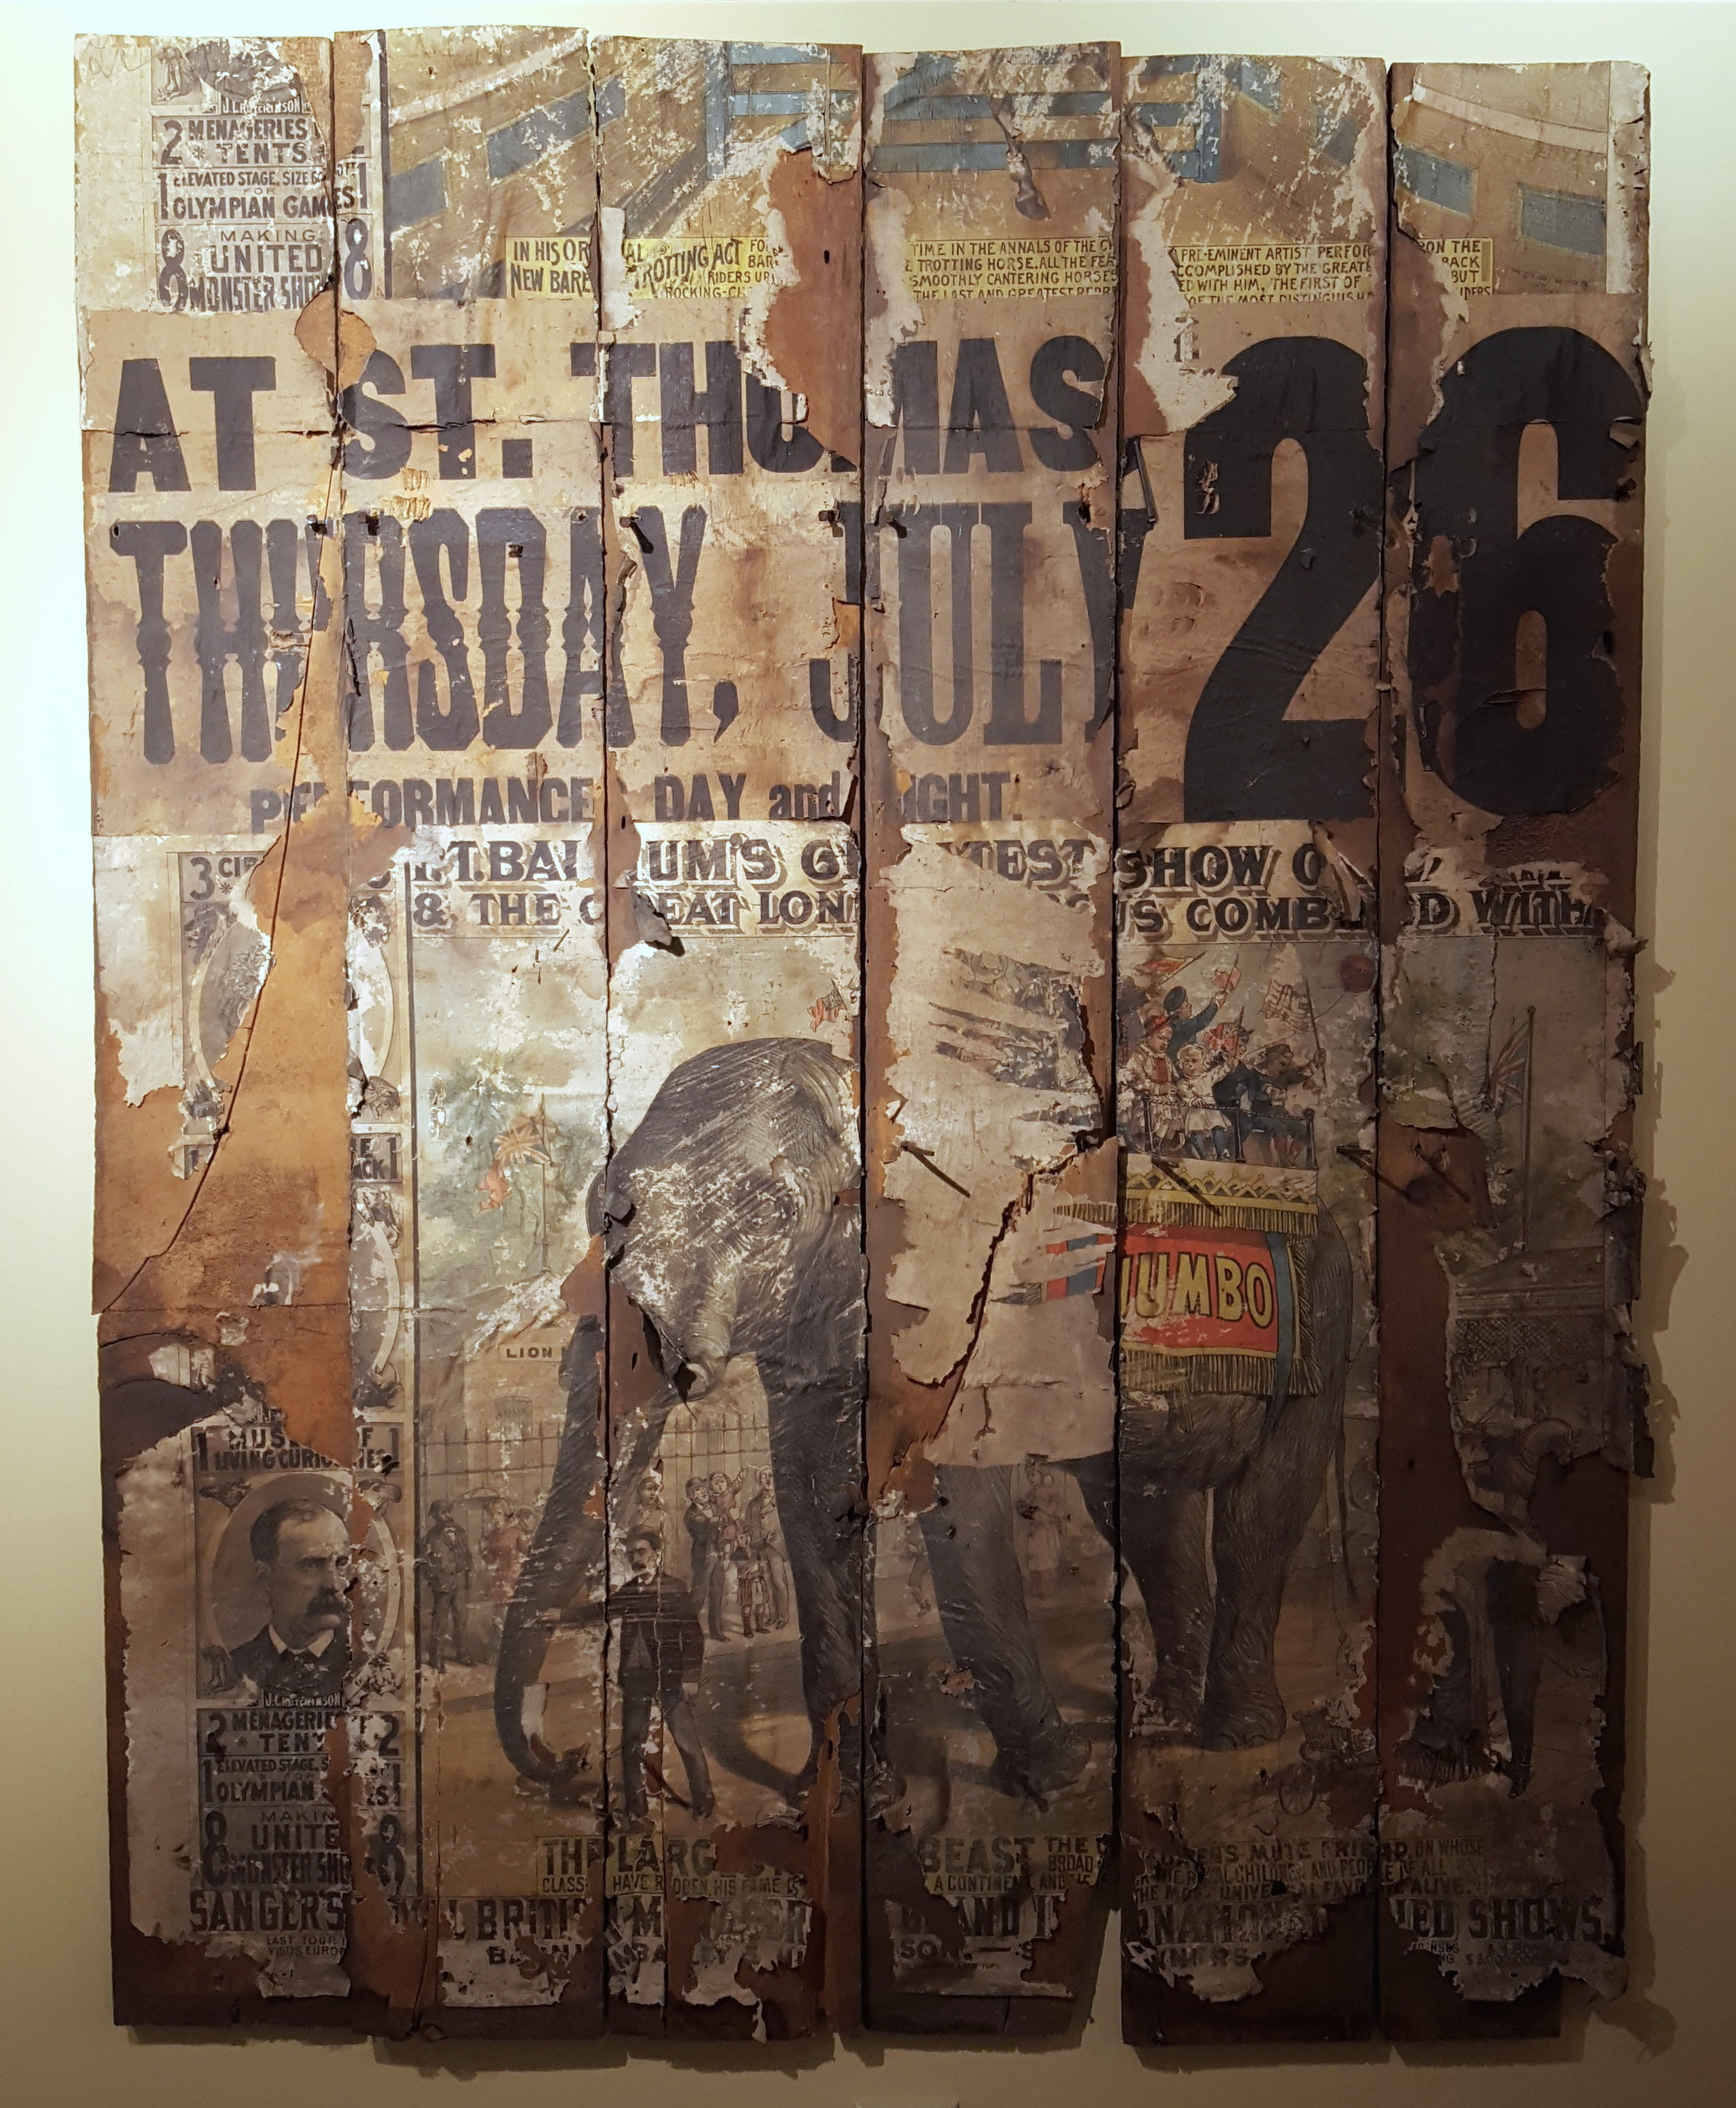 P. T. Barnum Circus posters displayed in the Elgin County Museum, before conservation treatment.